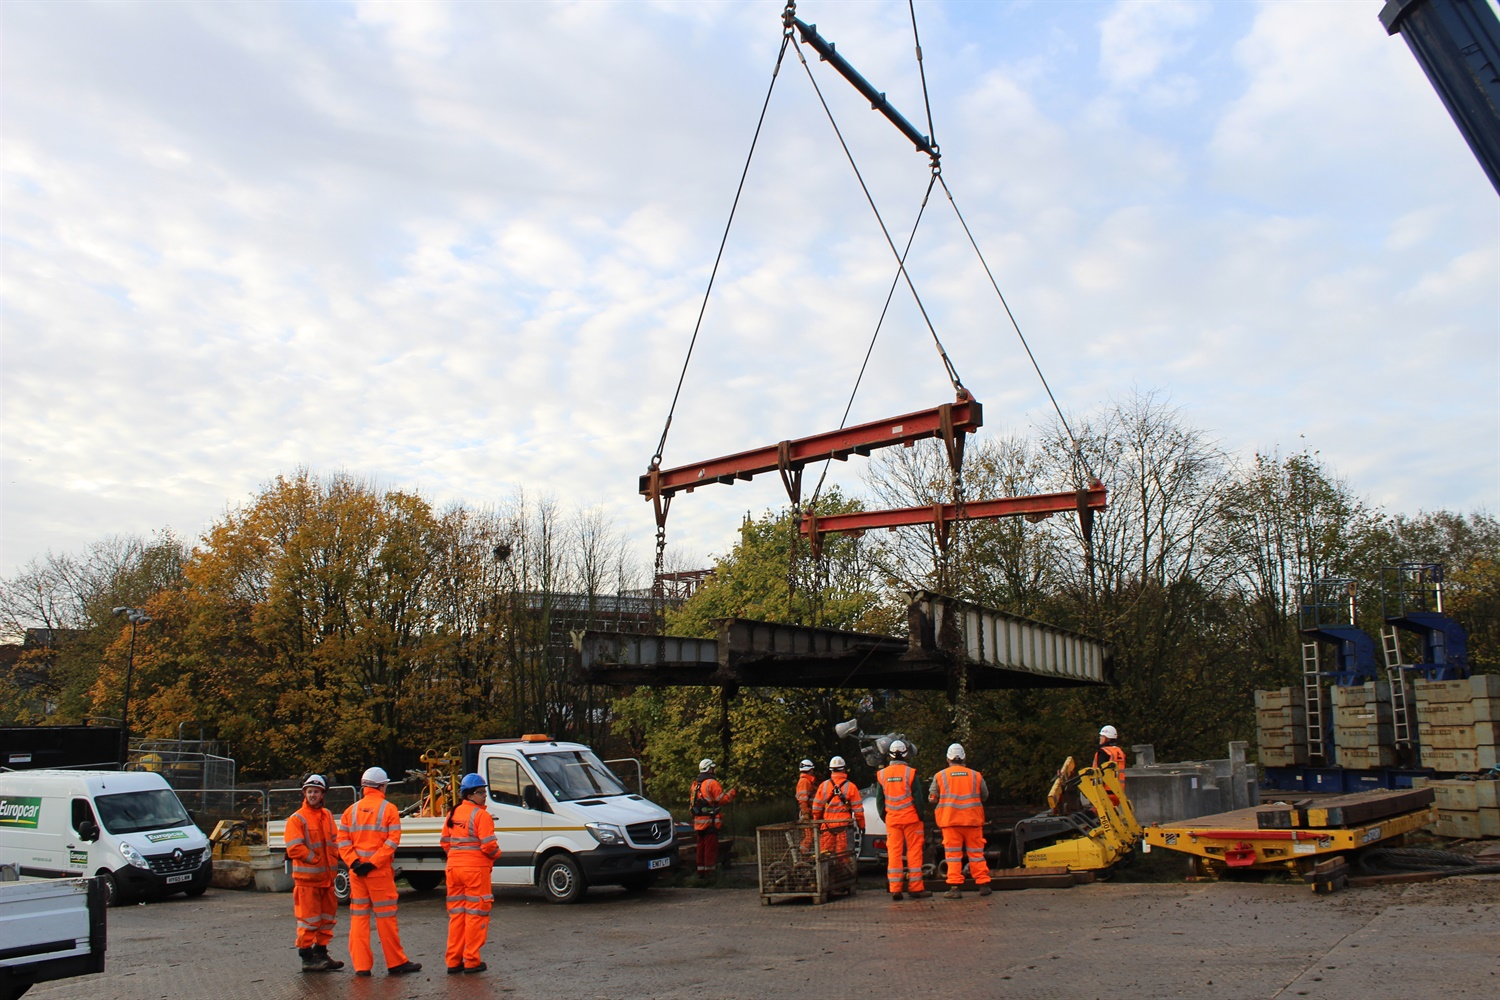 'Rotten' Burnley canal bridge replaced by Network Rail